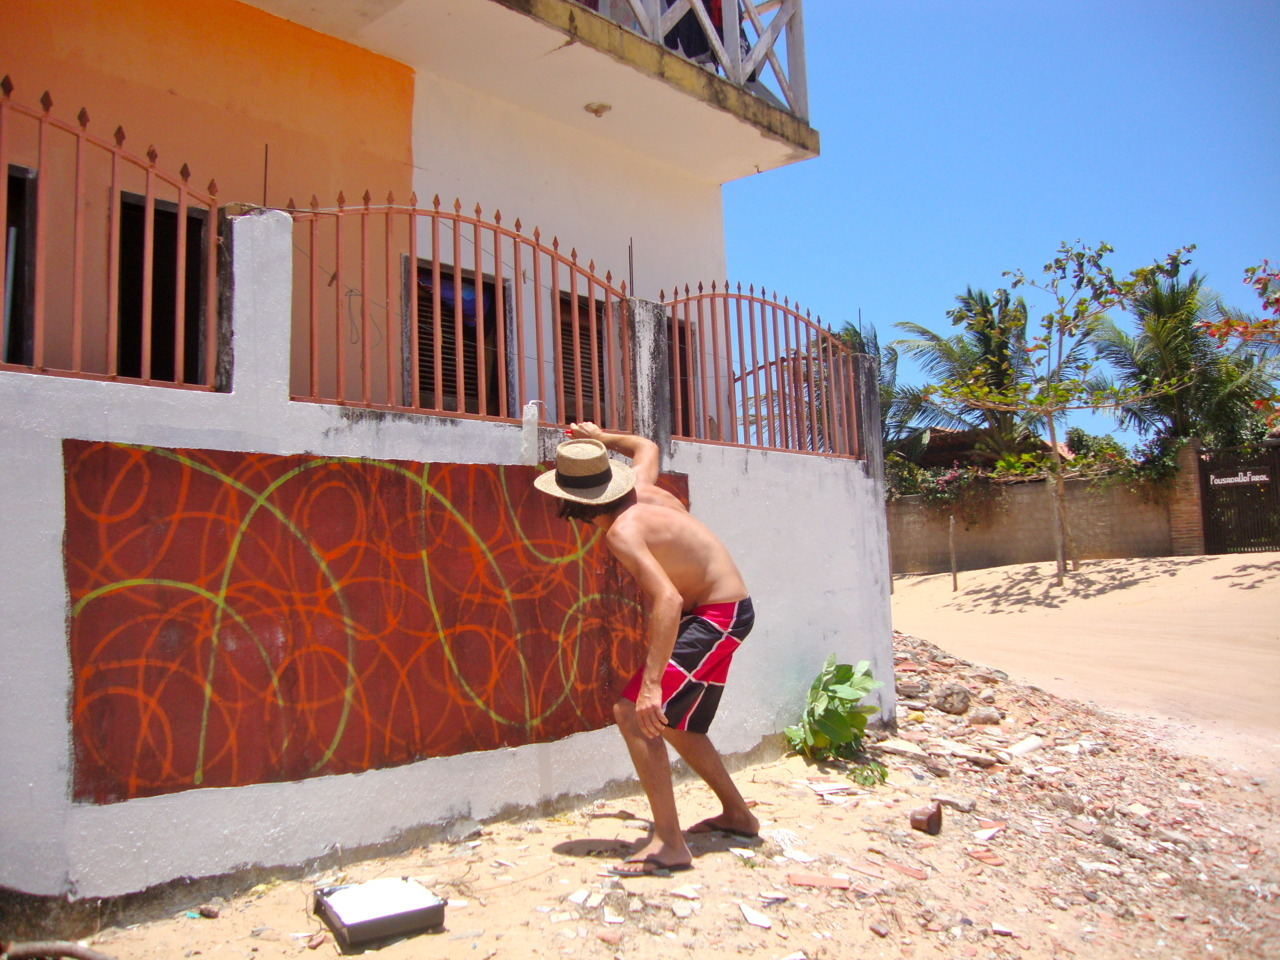 Bringing street art to a small beach town in Northeast Brazil. My hubby, talented artist and runs one of best street art tumblrs around www.rossiprojects.tumblr.com Work in progress. More to come!